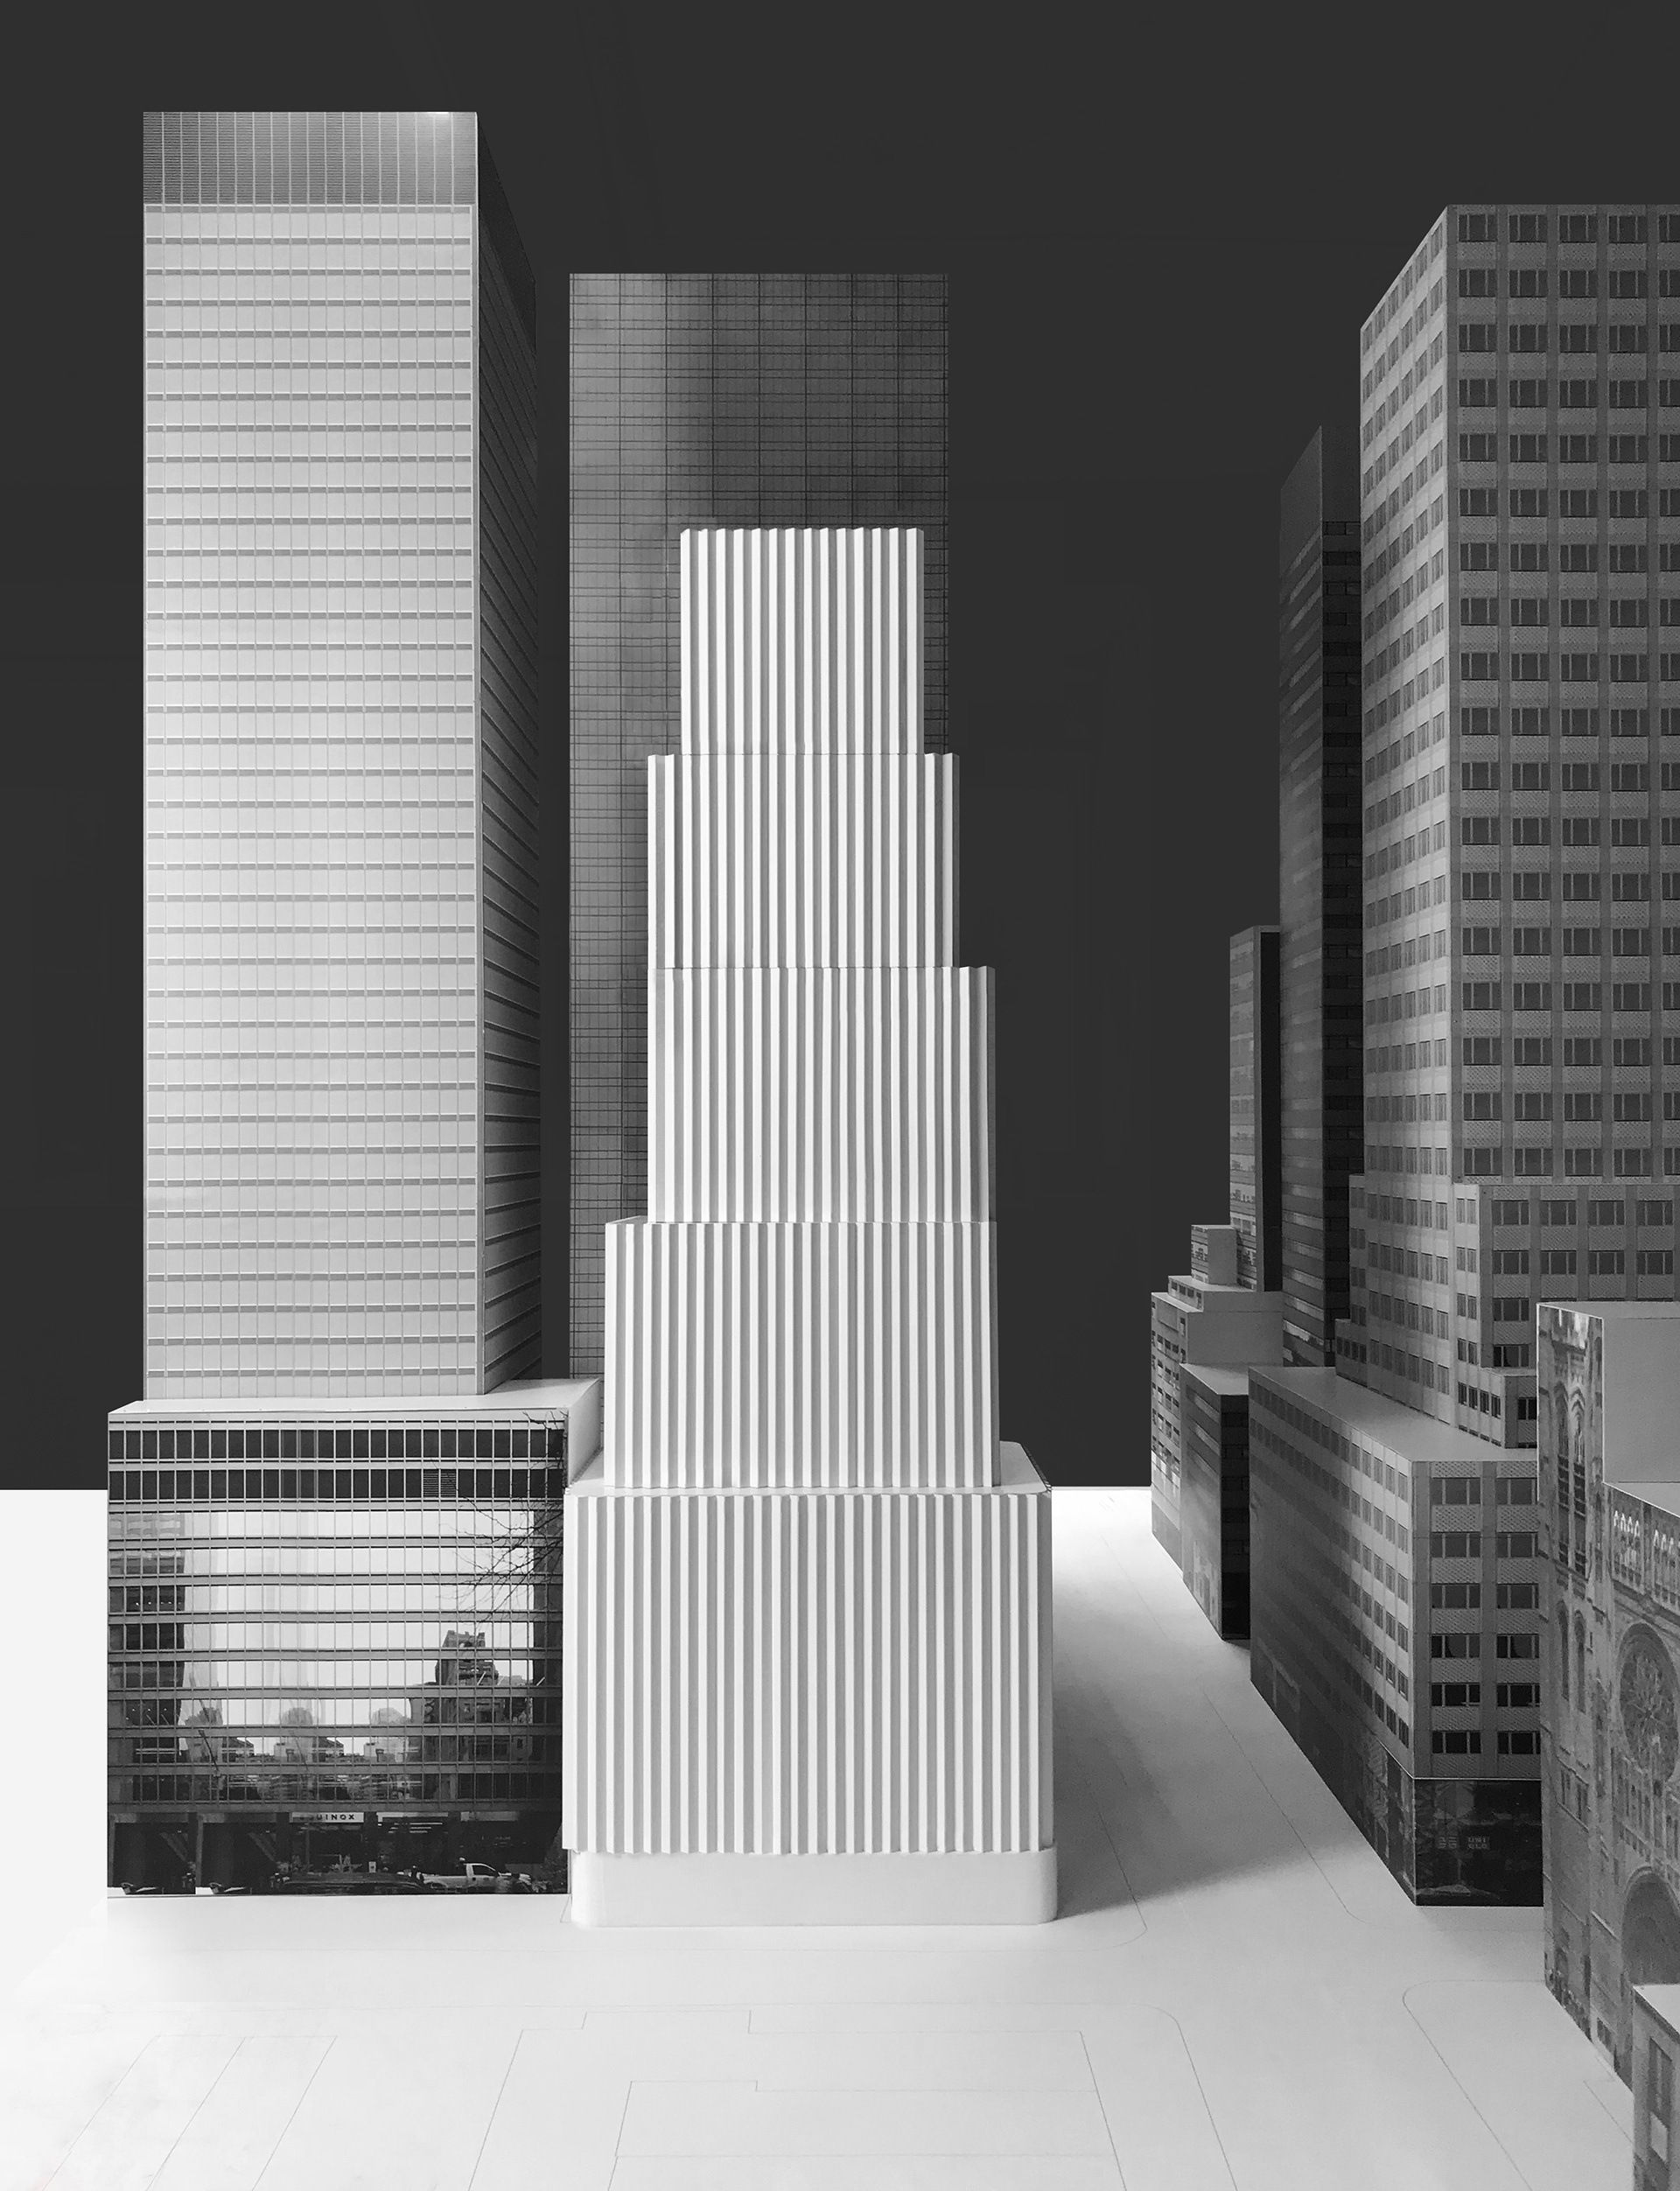 The model of the Rolex US headquarters in New York by David Chipperfield Architects | Rolex headquarters | David Chipperfield Architects | STIRworld